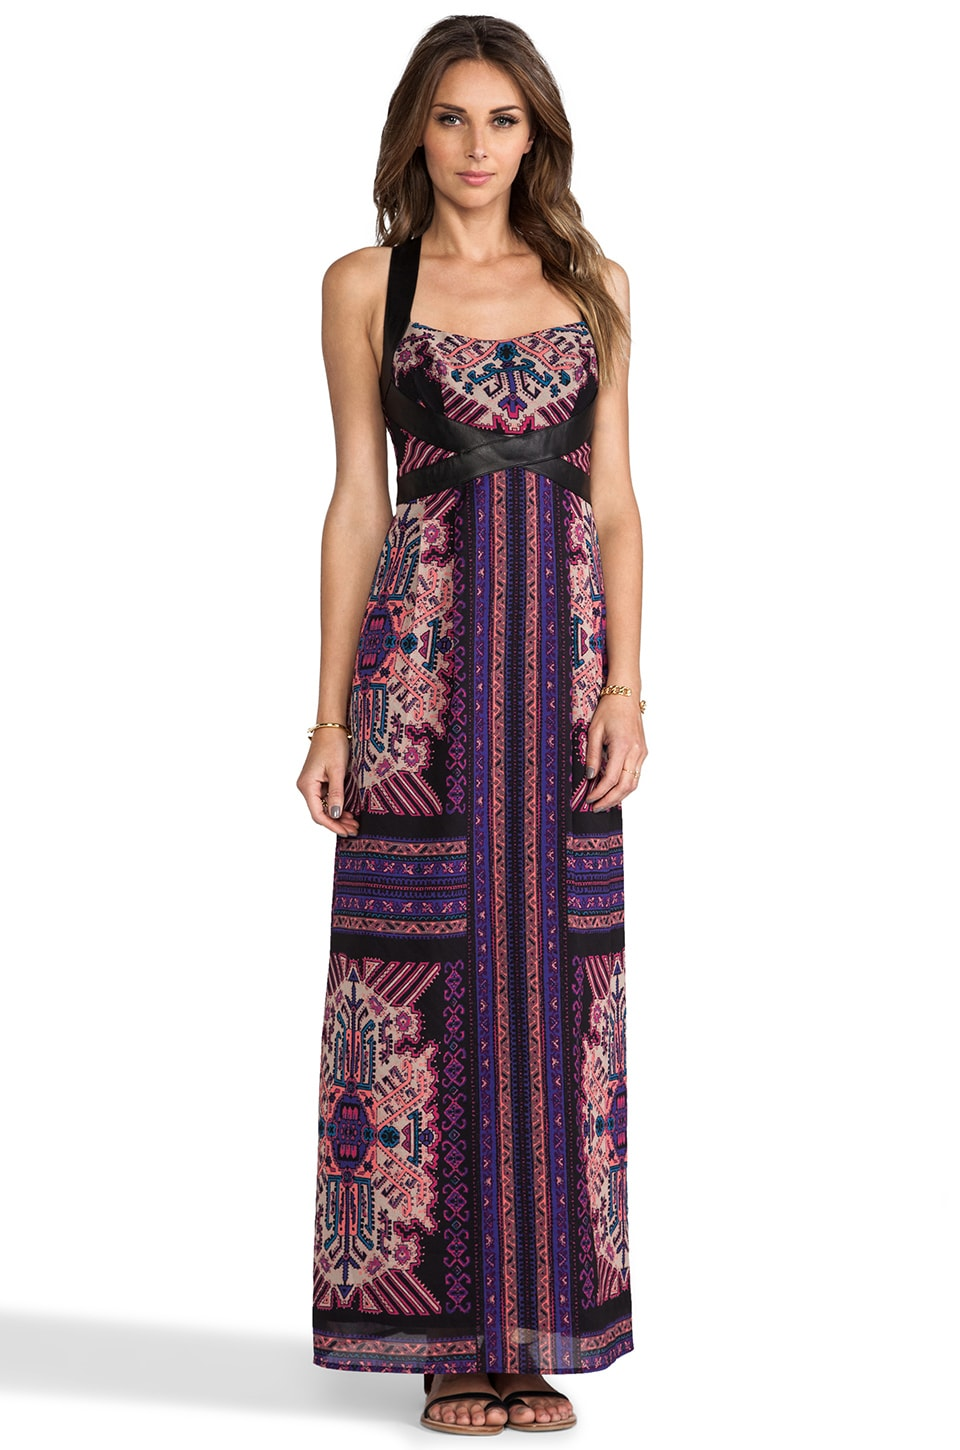 Nanette Lepore Sun Dance Dress in Black Multi